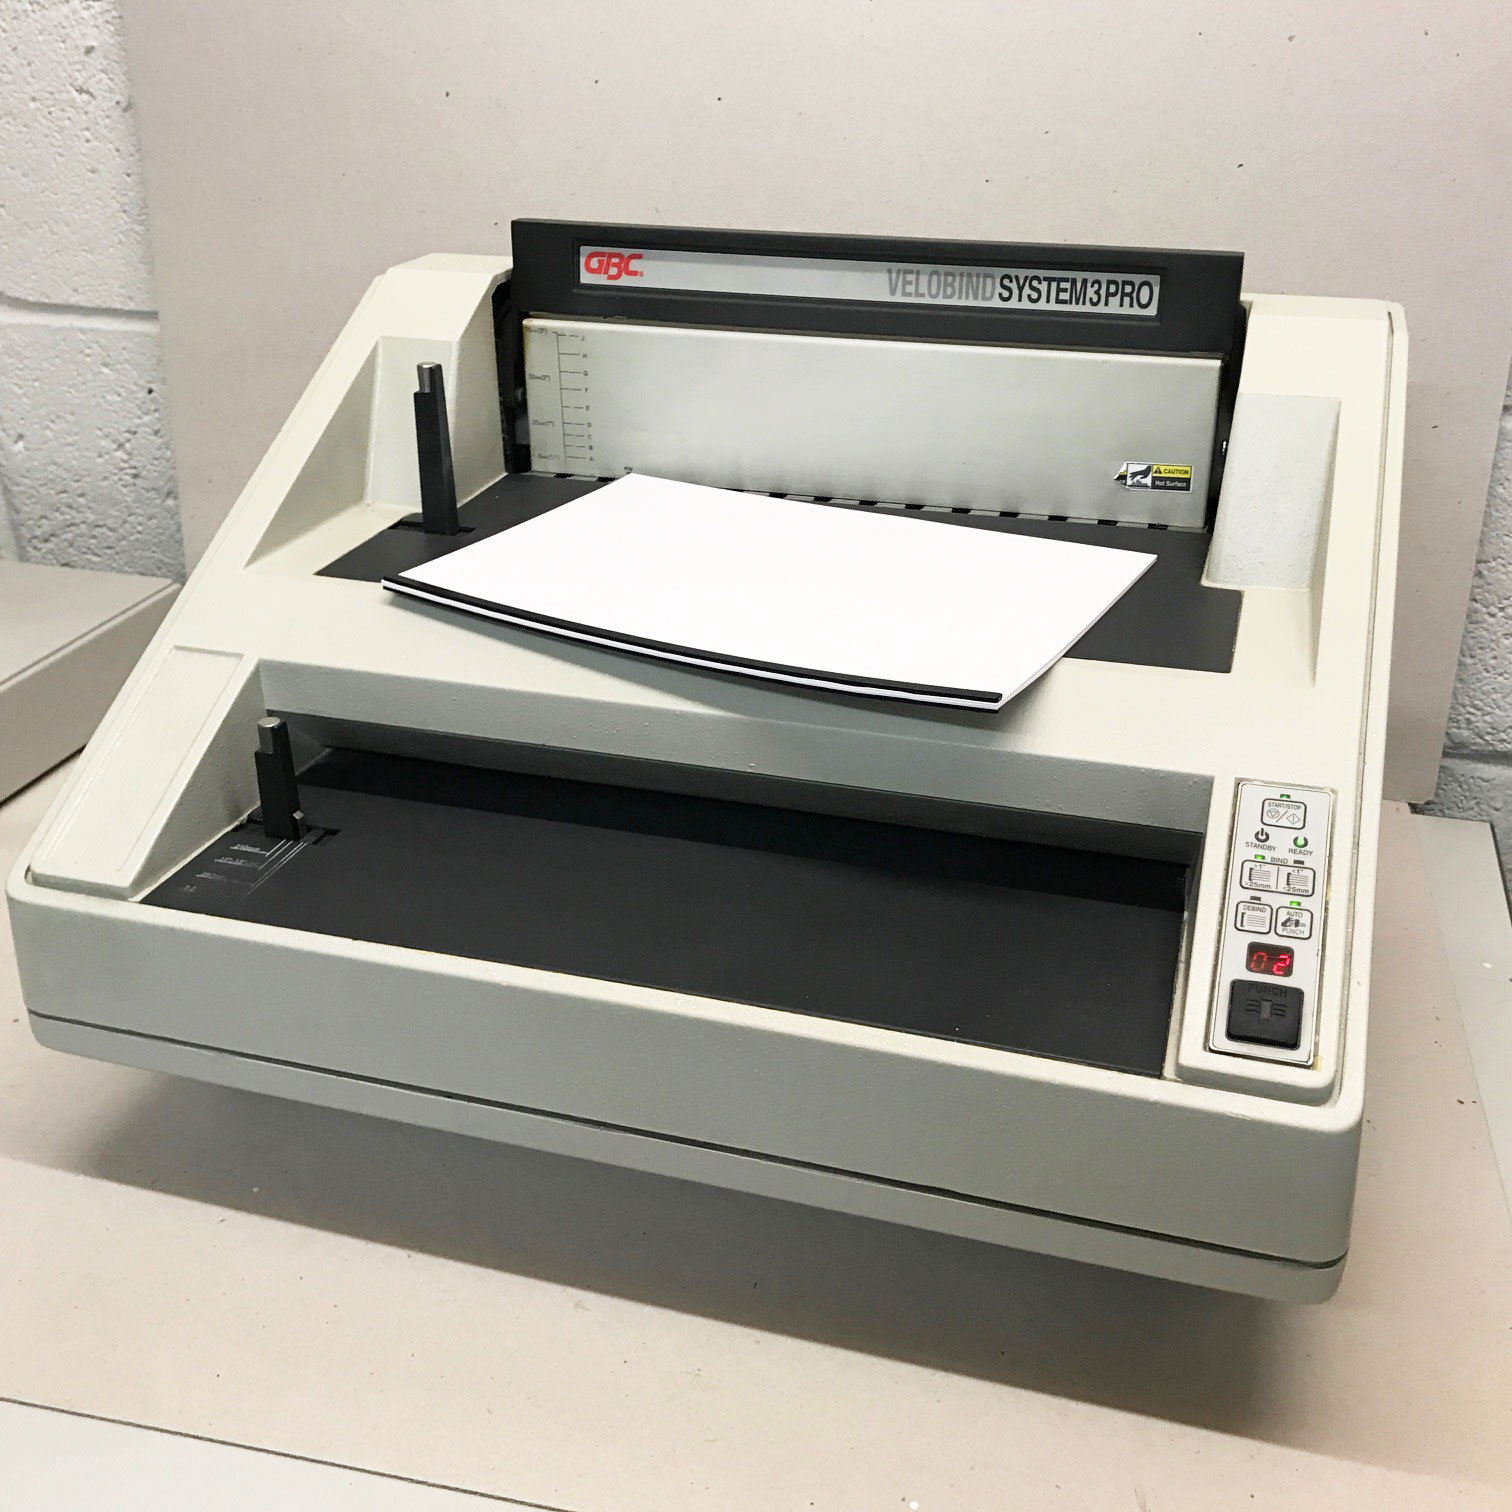 Pre-owned GBC Velobind System-3 12-Prong Strip Binder